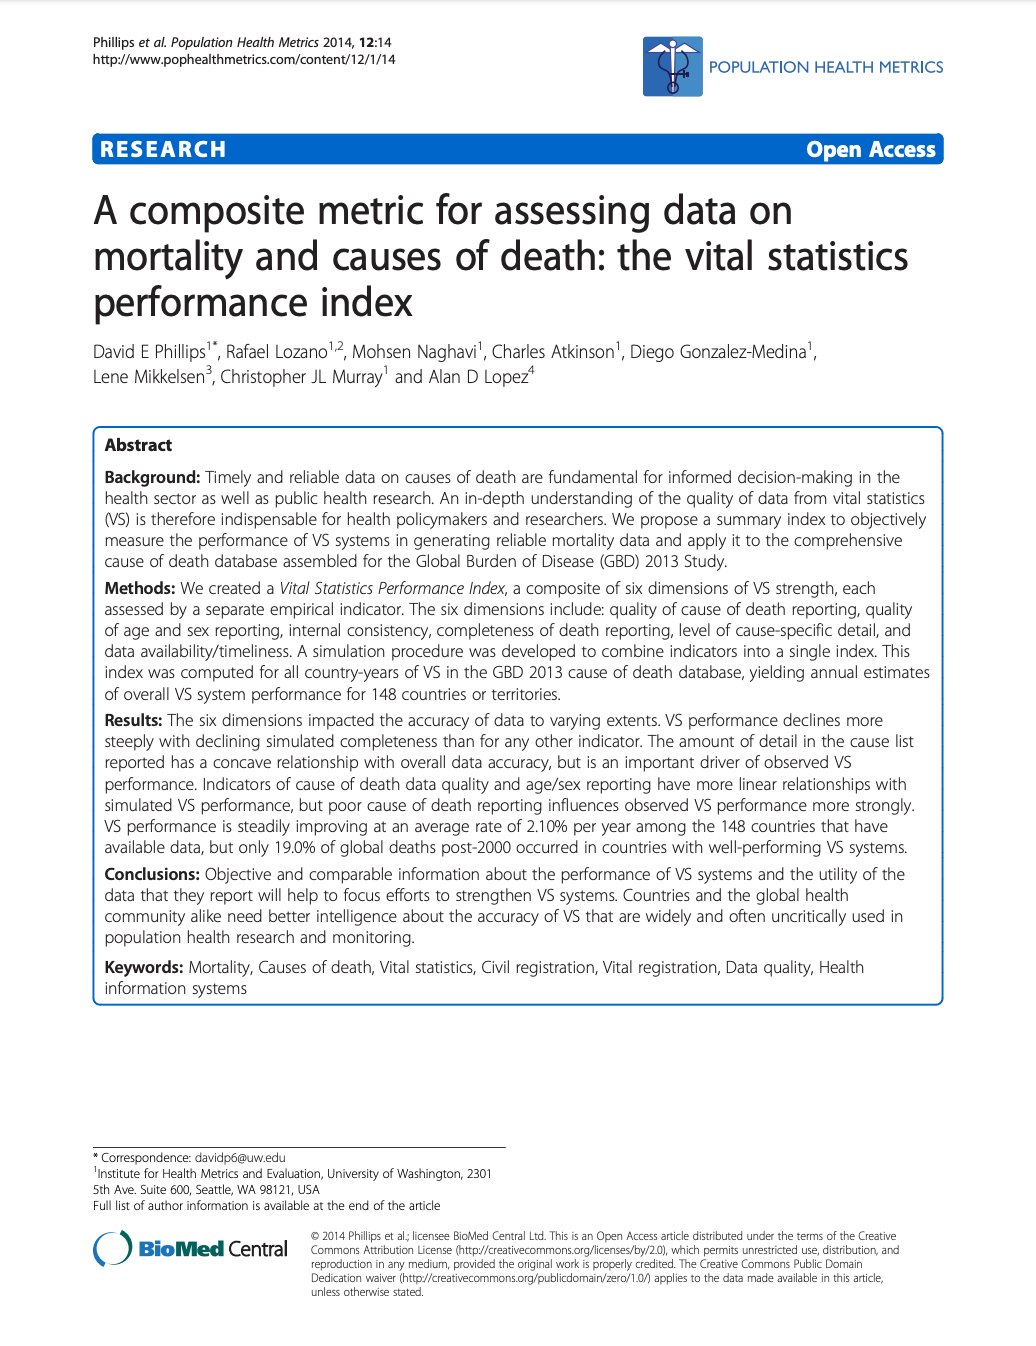 A composite metric for assessing data on mortality and causes of death: the vital statistics performance index THUMBNAIL